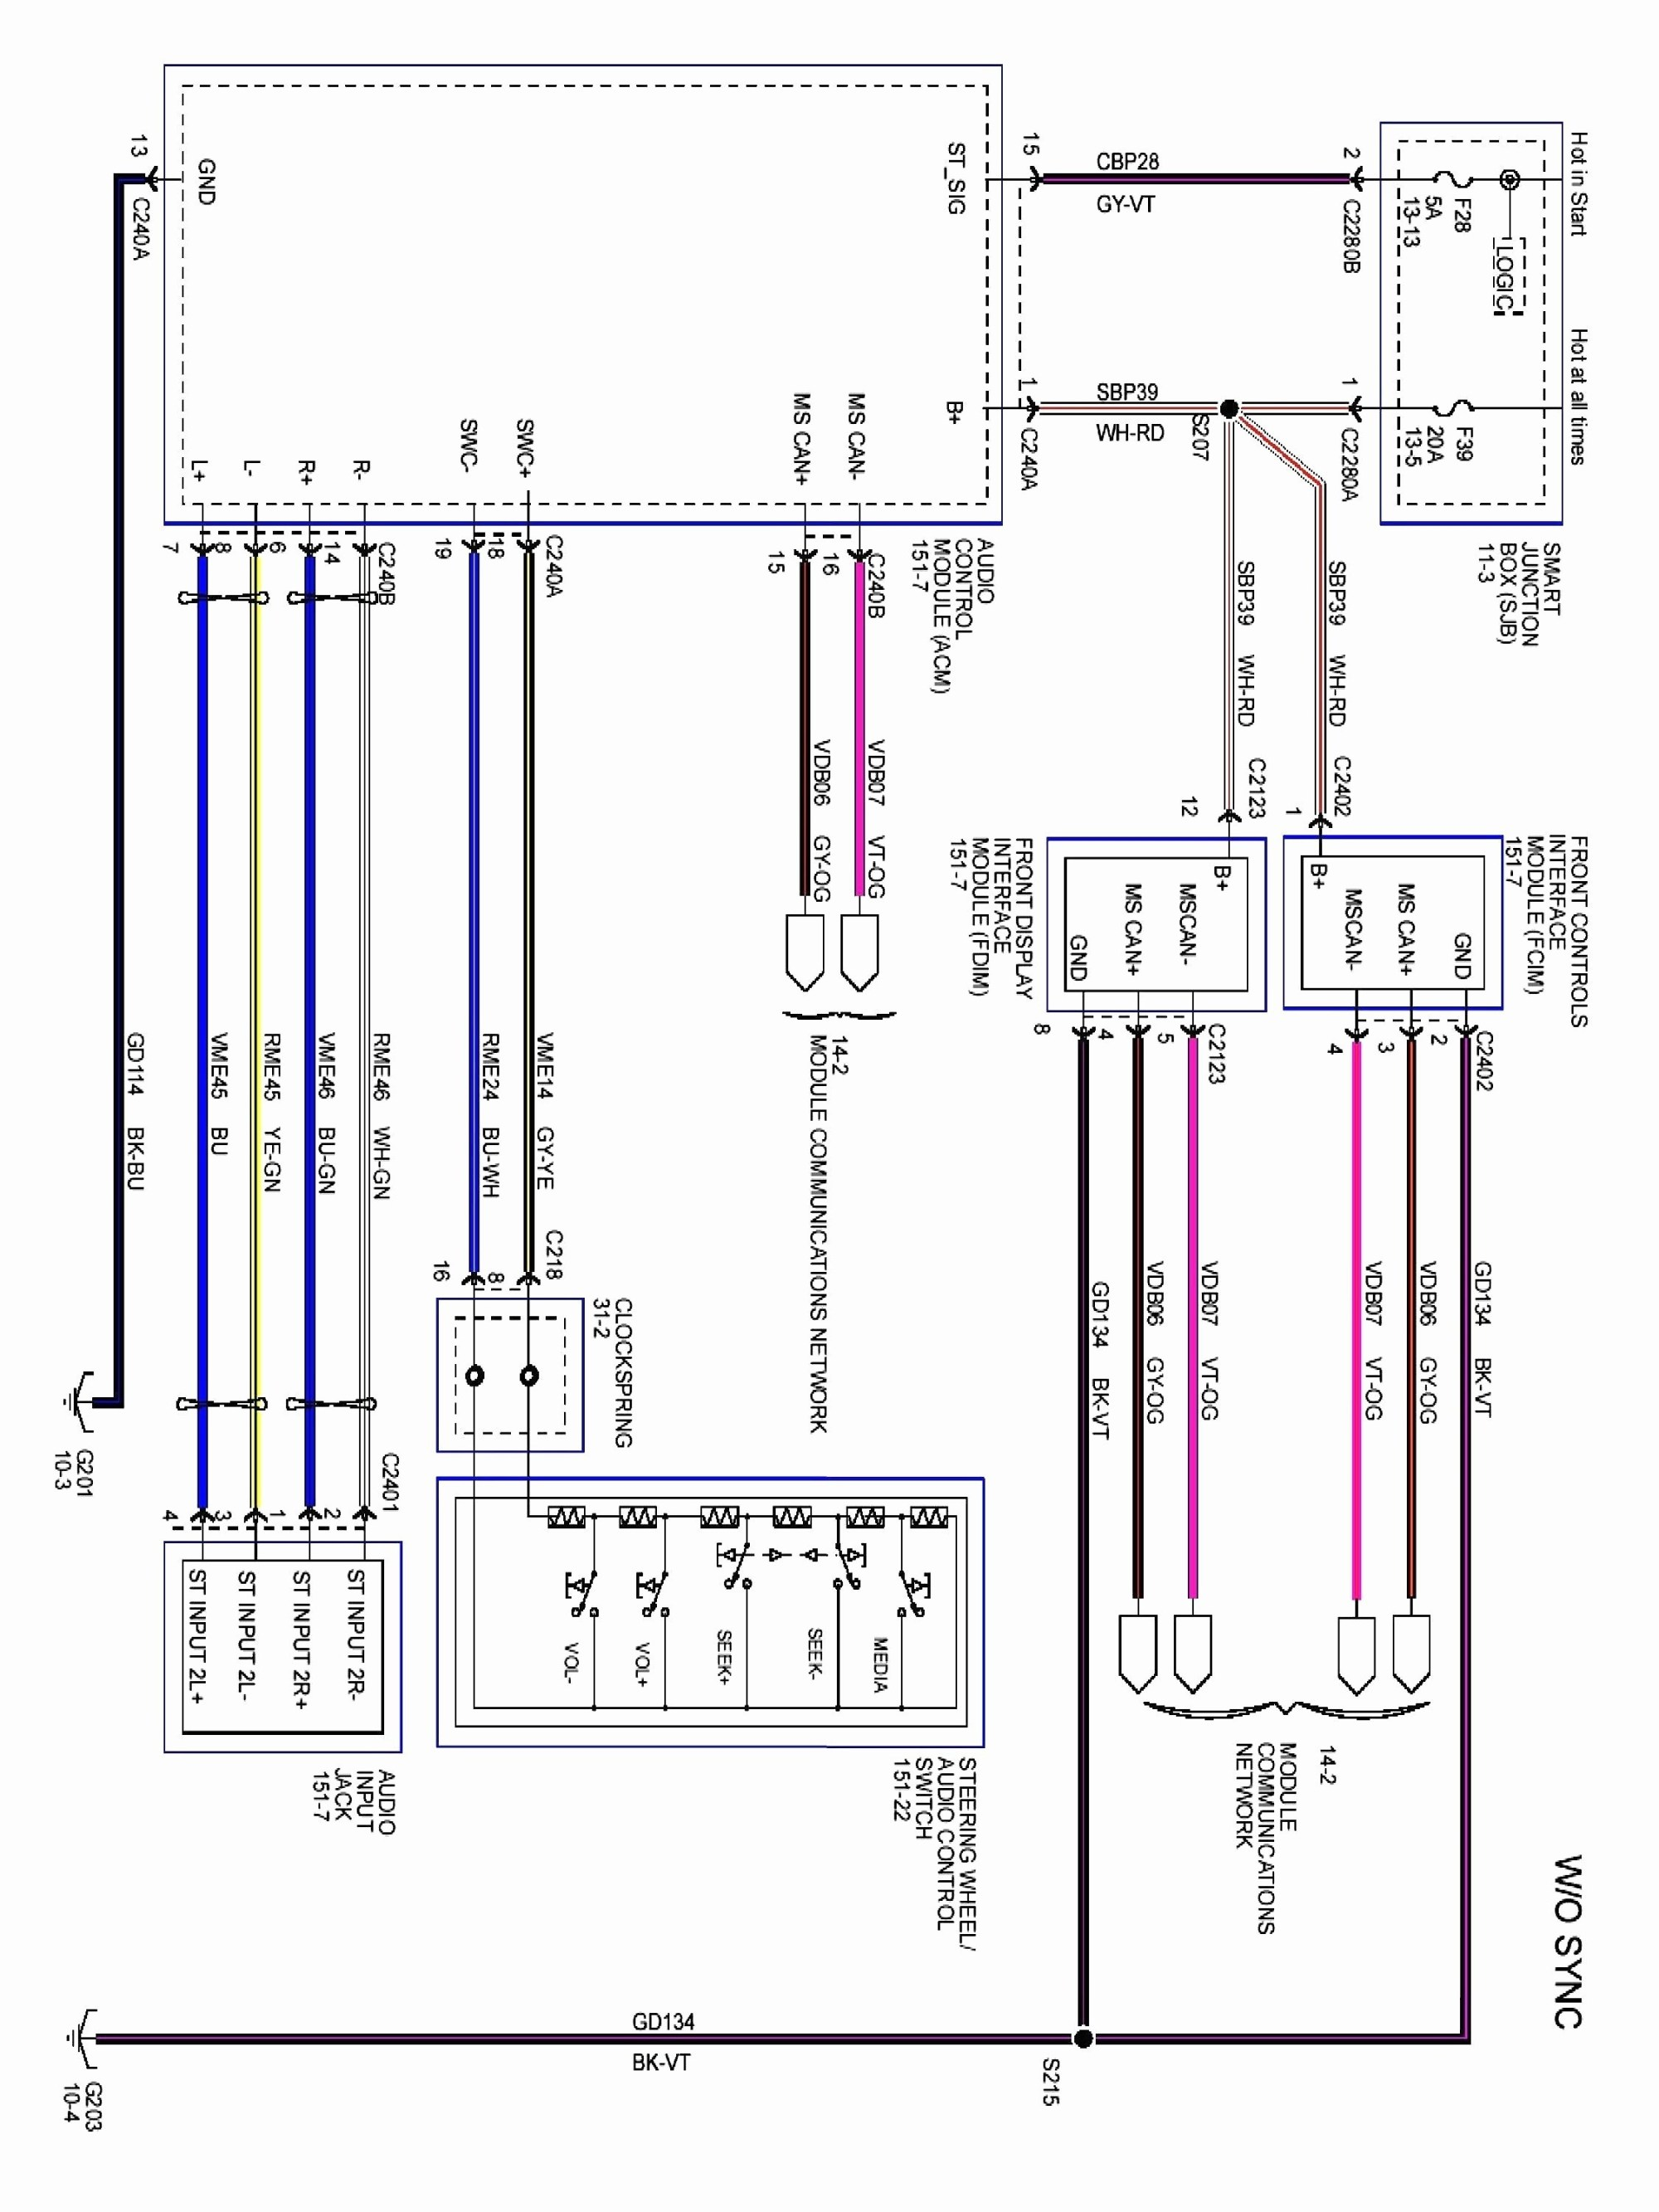 hight resolution of car labeled diagram wiring diagram in a car valid wiring diagram for amplifier car of car